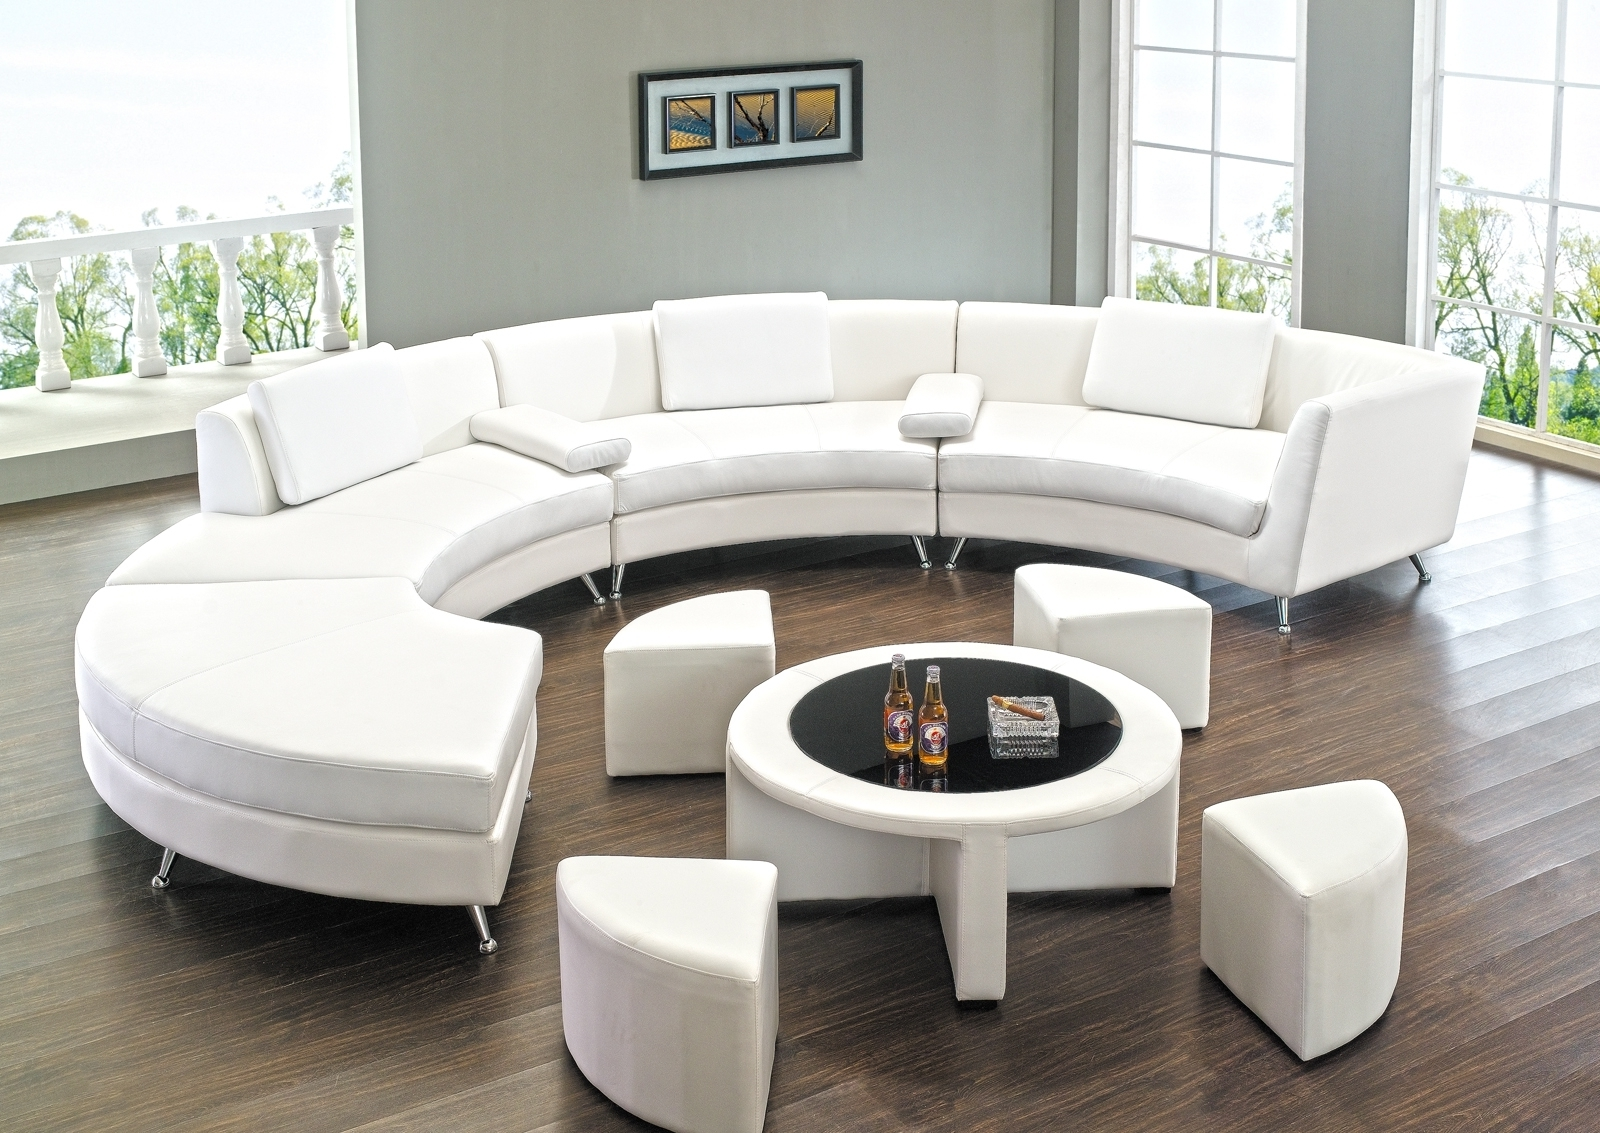 Round Sectional Sofa Has One Of The Best Kind Of Other Is Regarding Preferred Round Sectional Sofas (View 9 of 15)